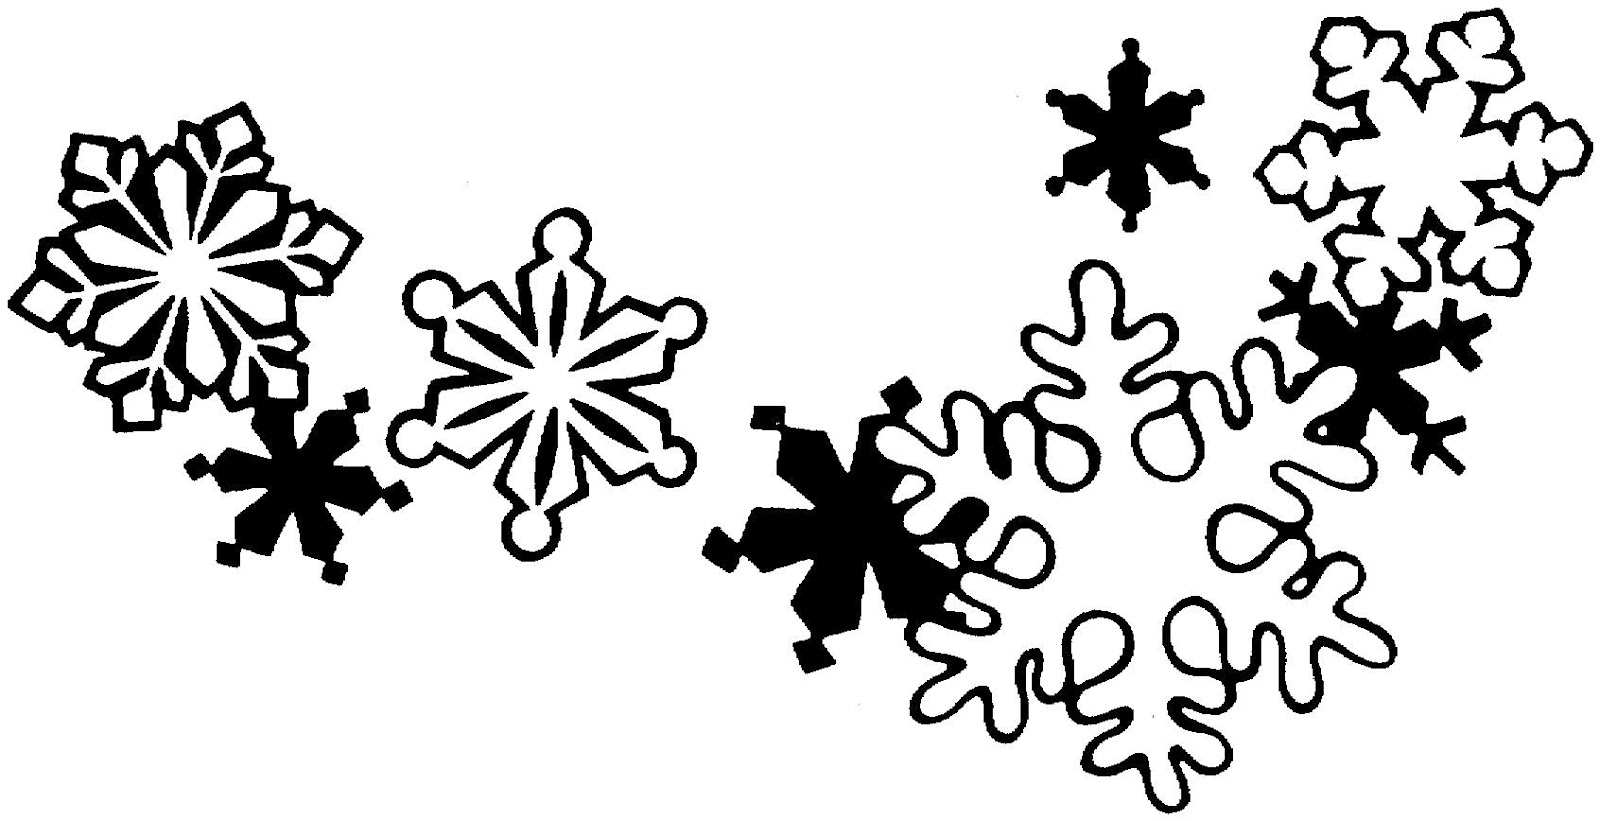 Snowman Black And White Snowflake Clipart Black And White